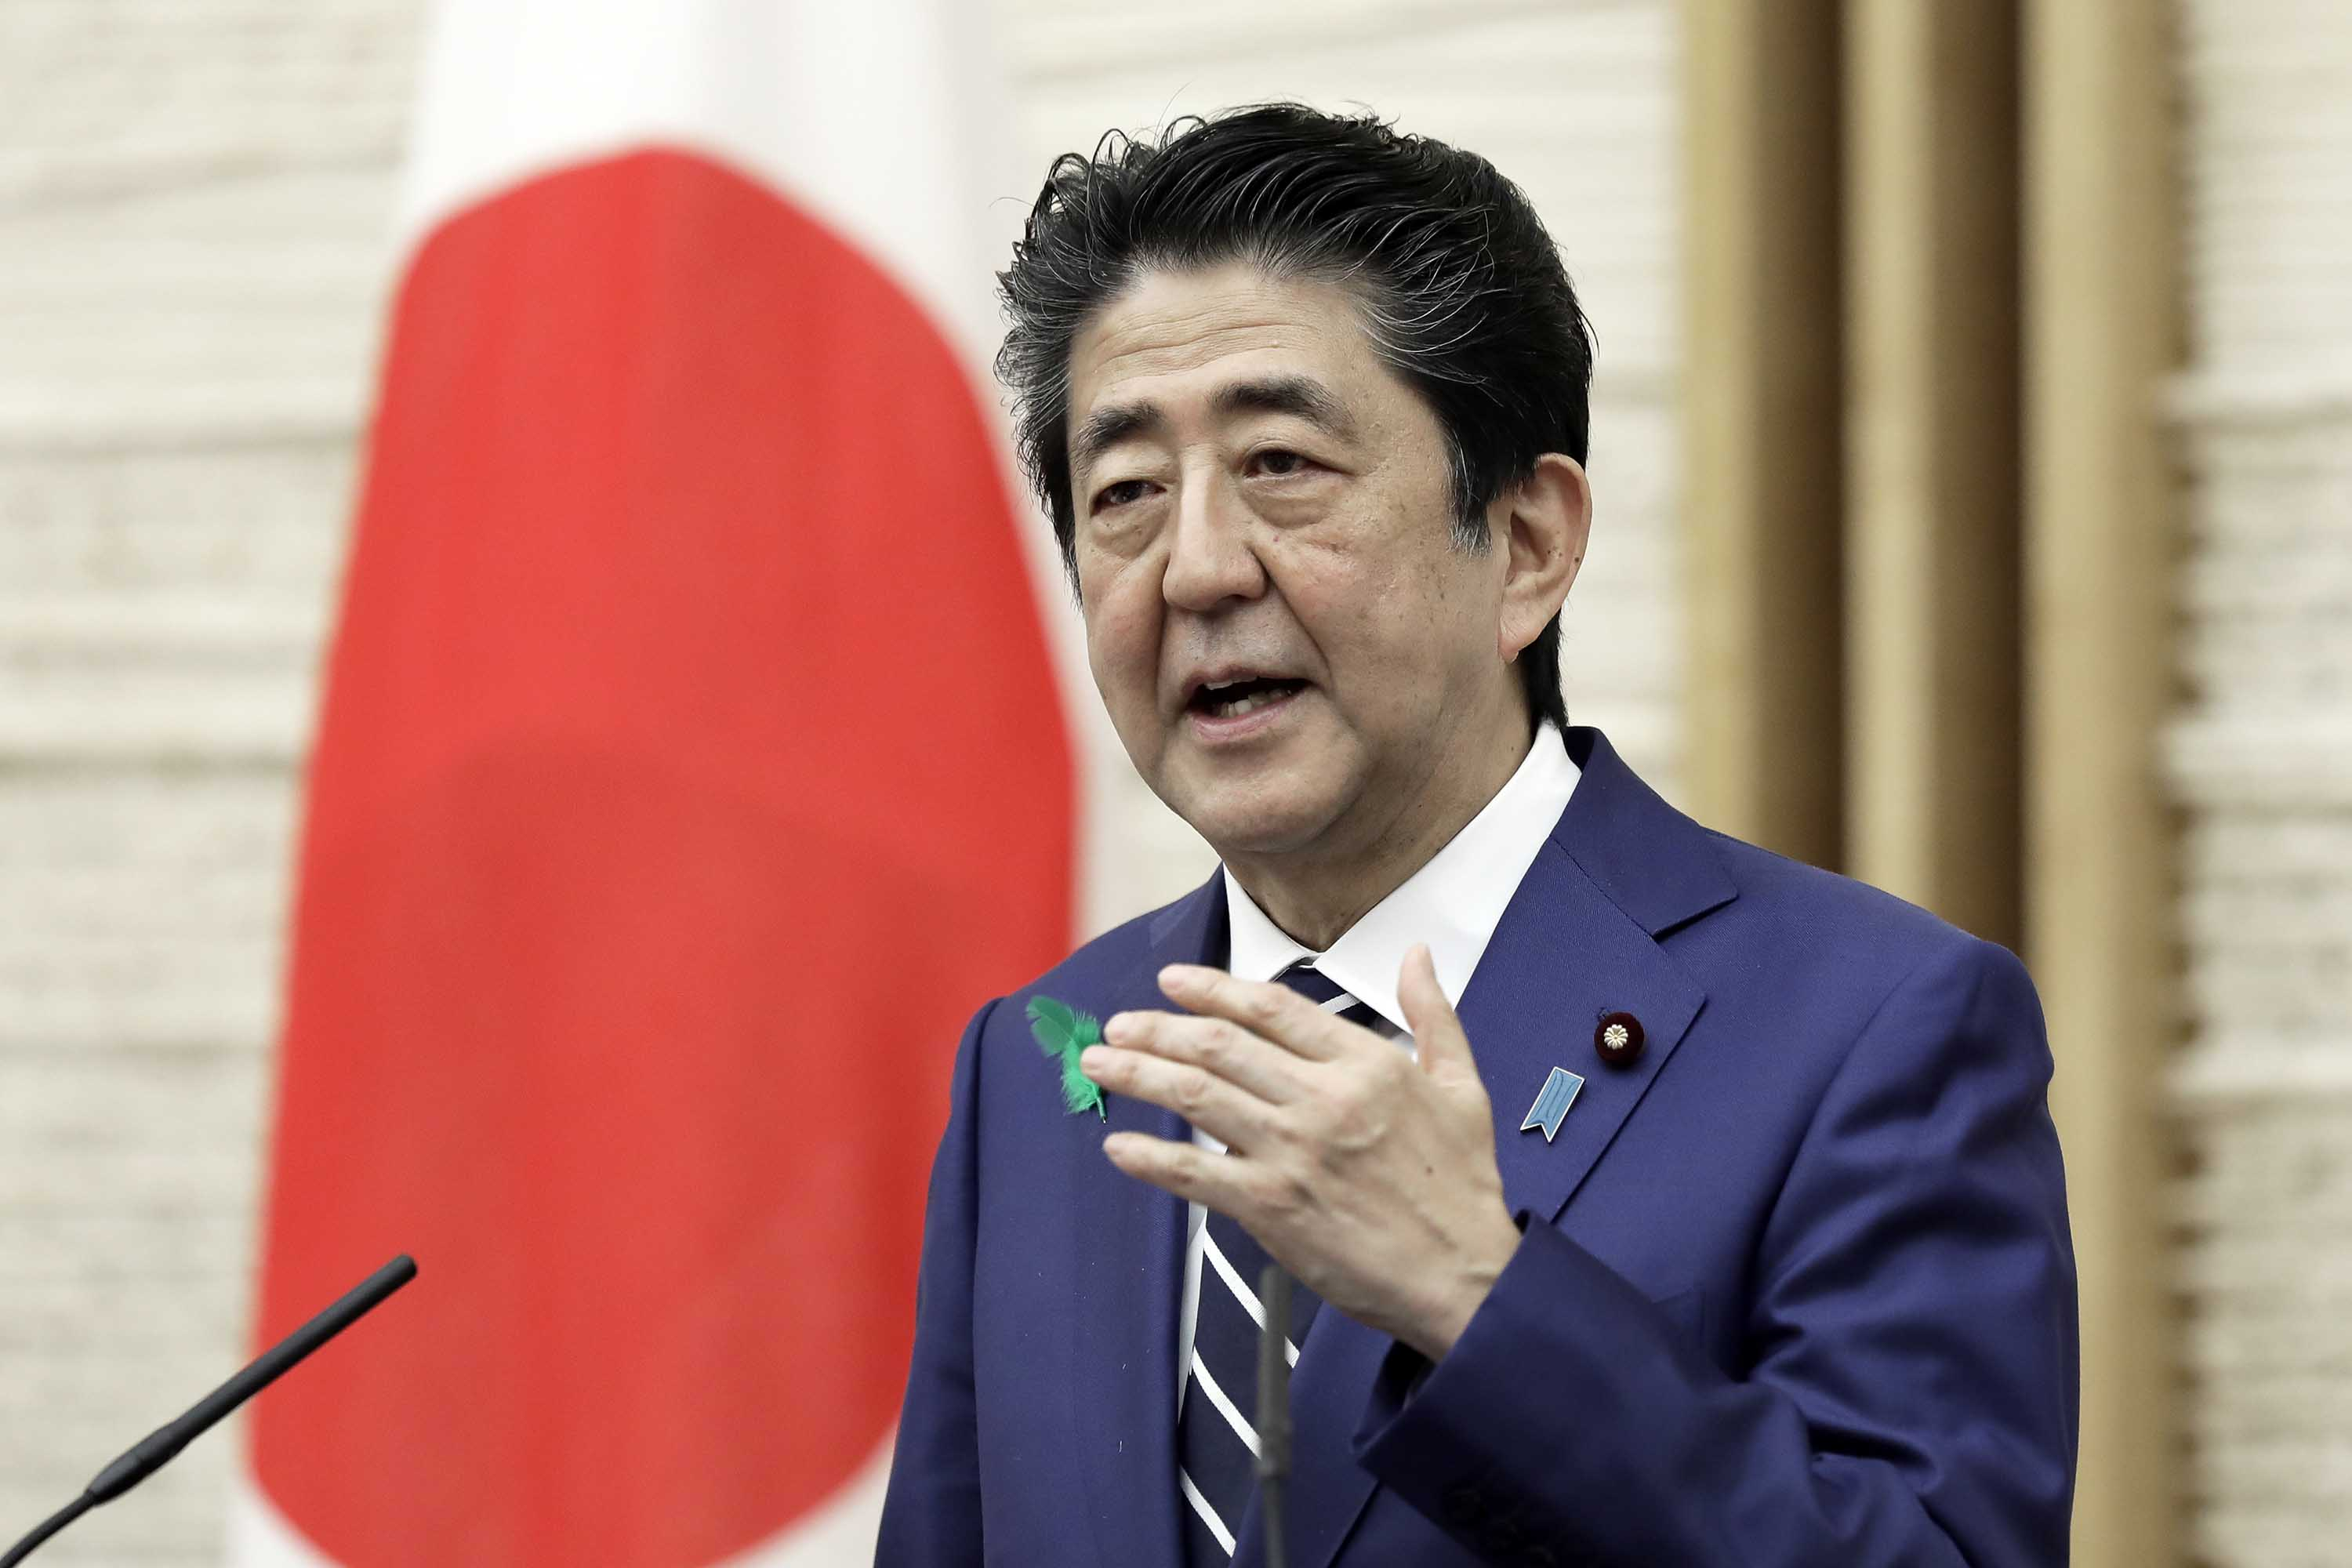 Japan's Prime Minister Shinzo Abe speaks during a news conference in Tokyo, Japan, on April 17.